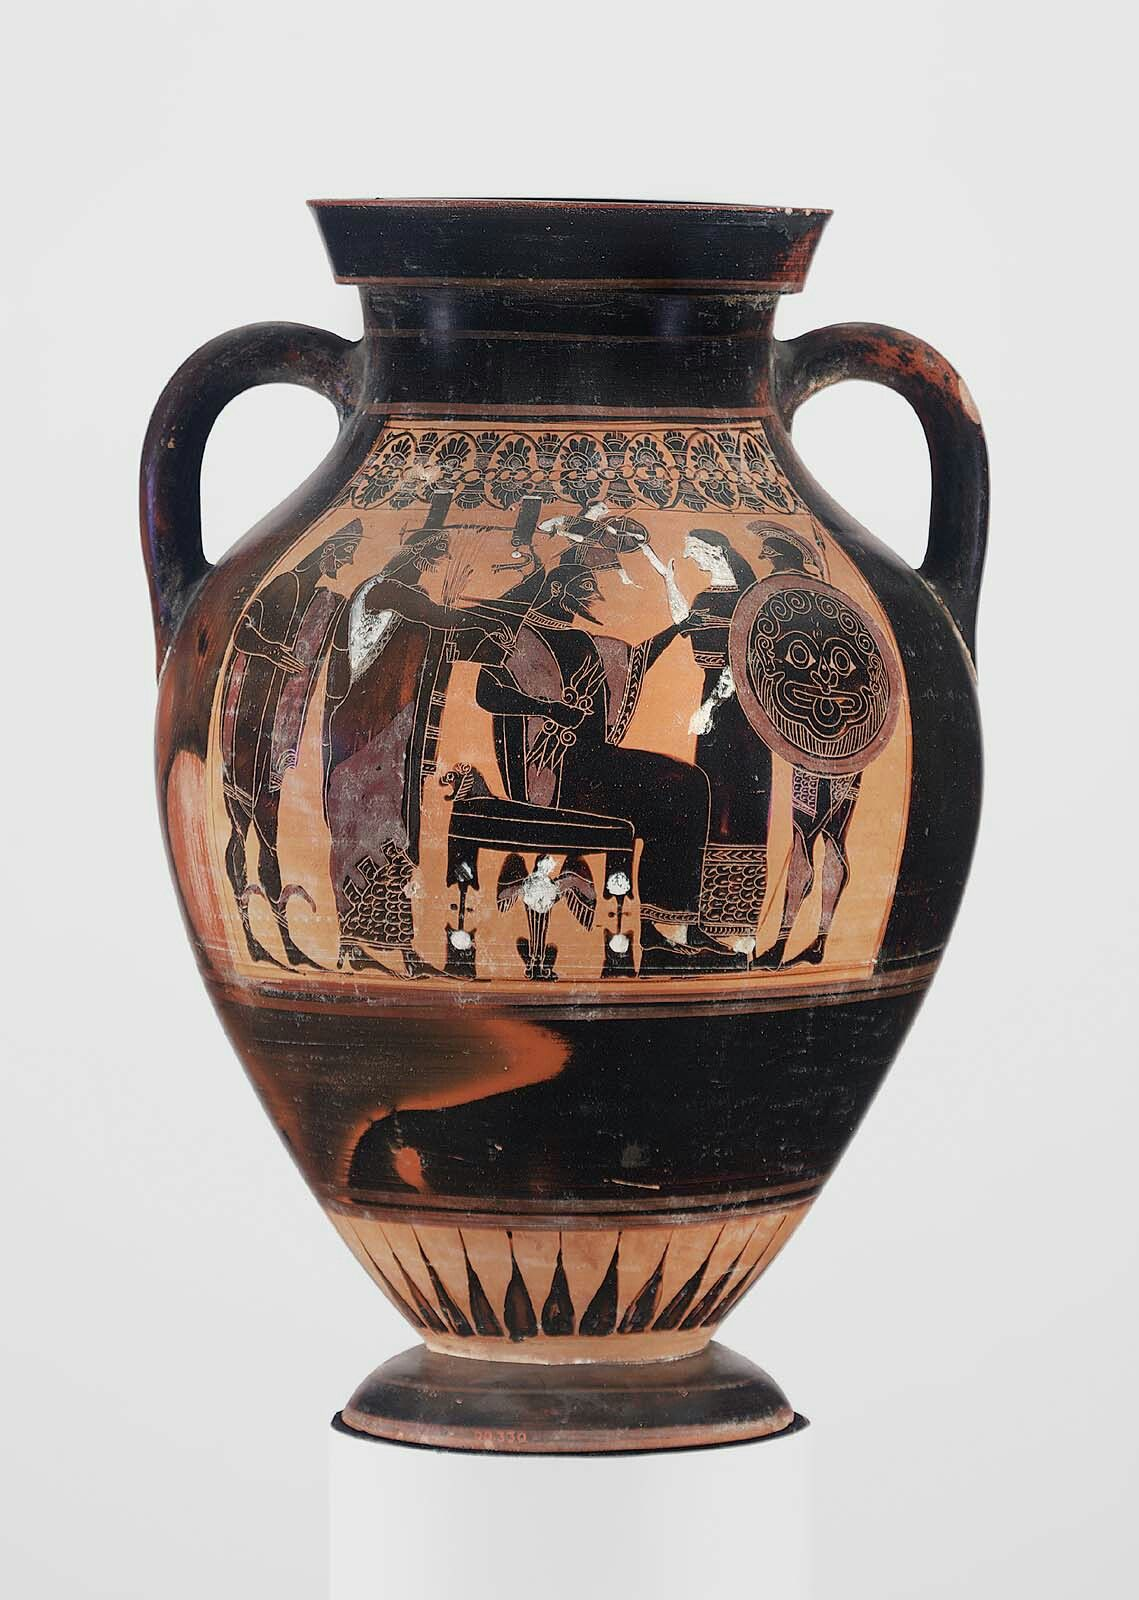 Ceramic Black Figure Two Handled Jar Amphora Depicting The Birth Of Athena